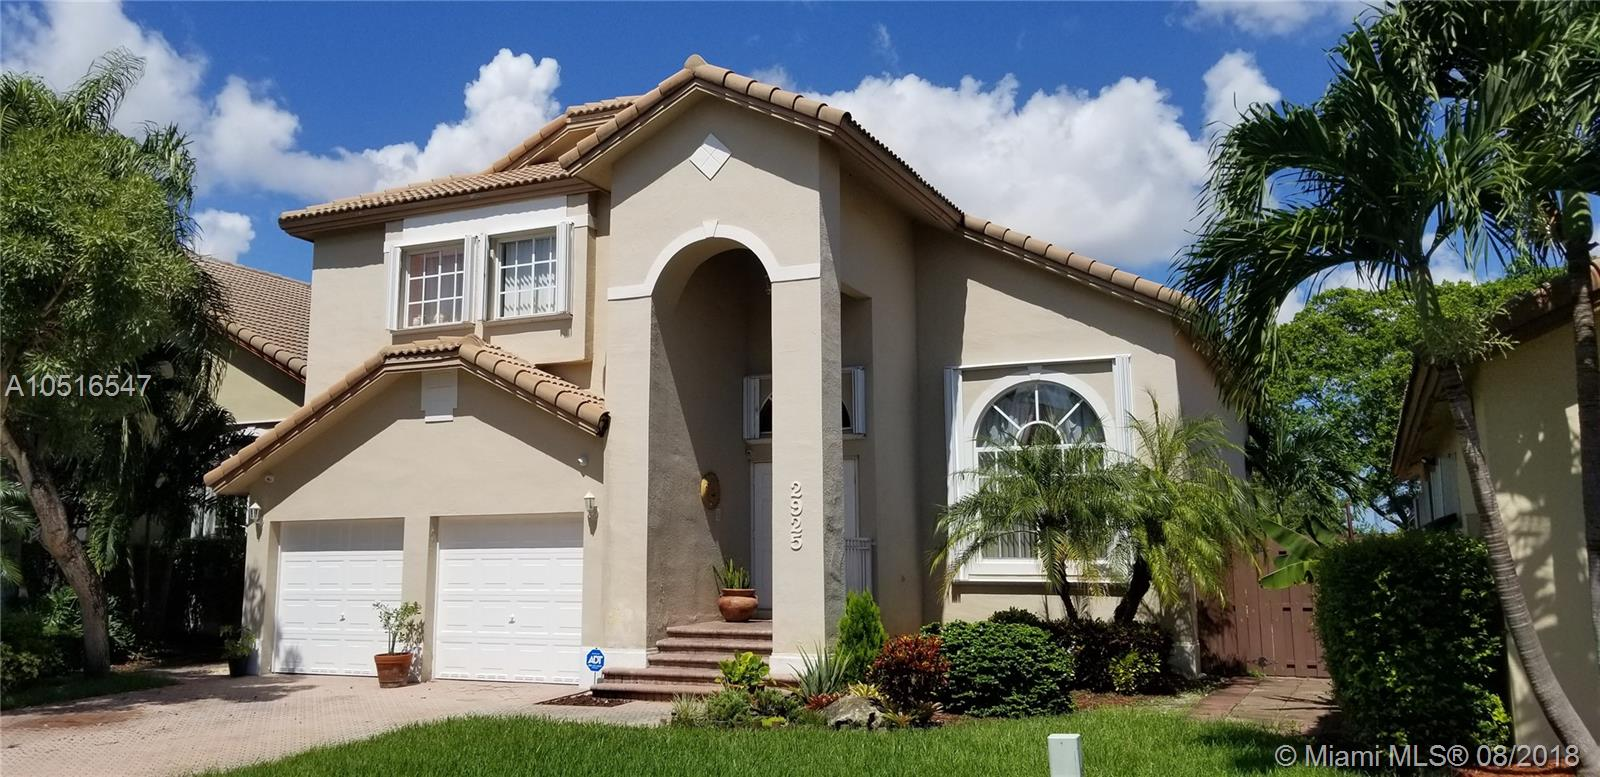 2925 Nw 97th Ct, Doral FL, 33172